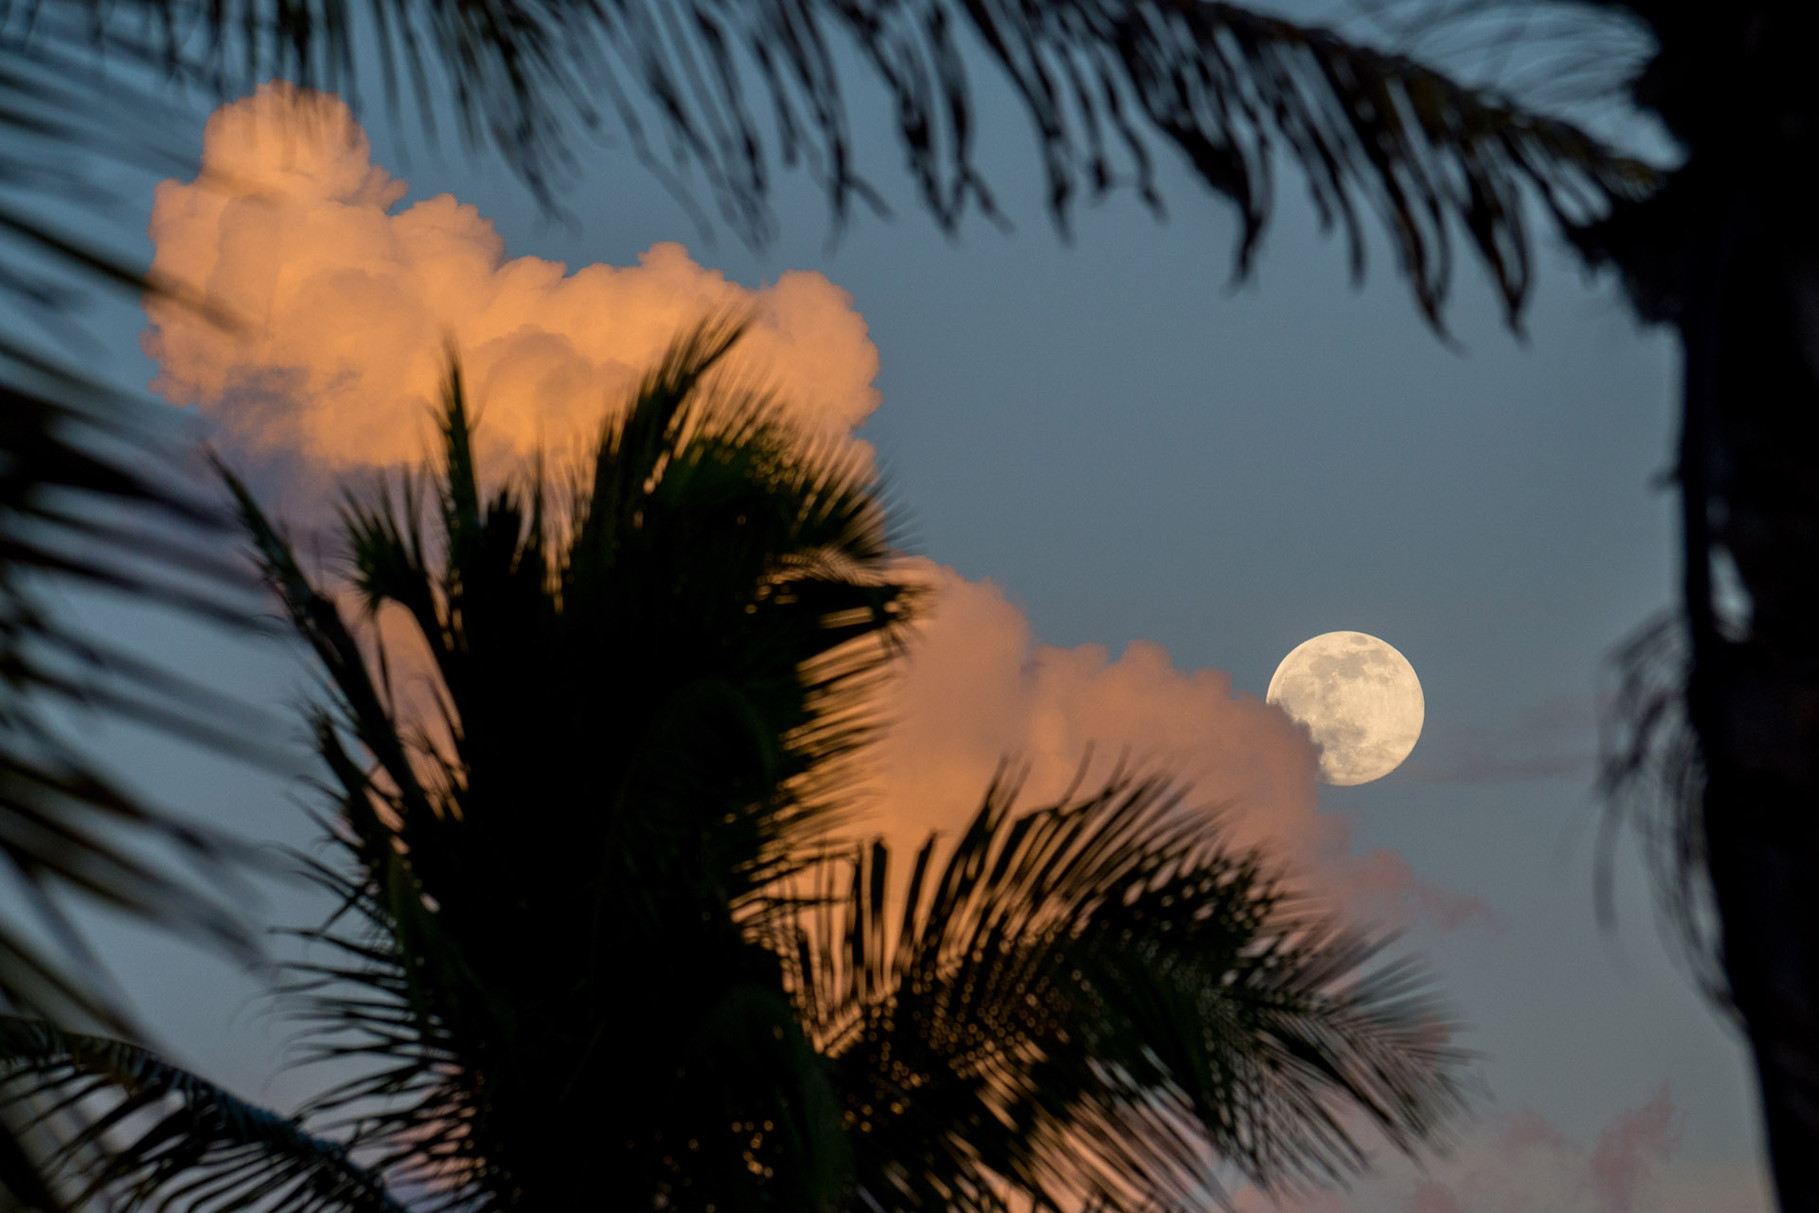 Moonrise at Key West (CB Harvey Rest Beach Park)